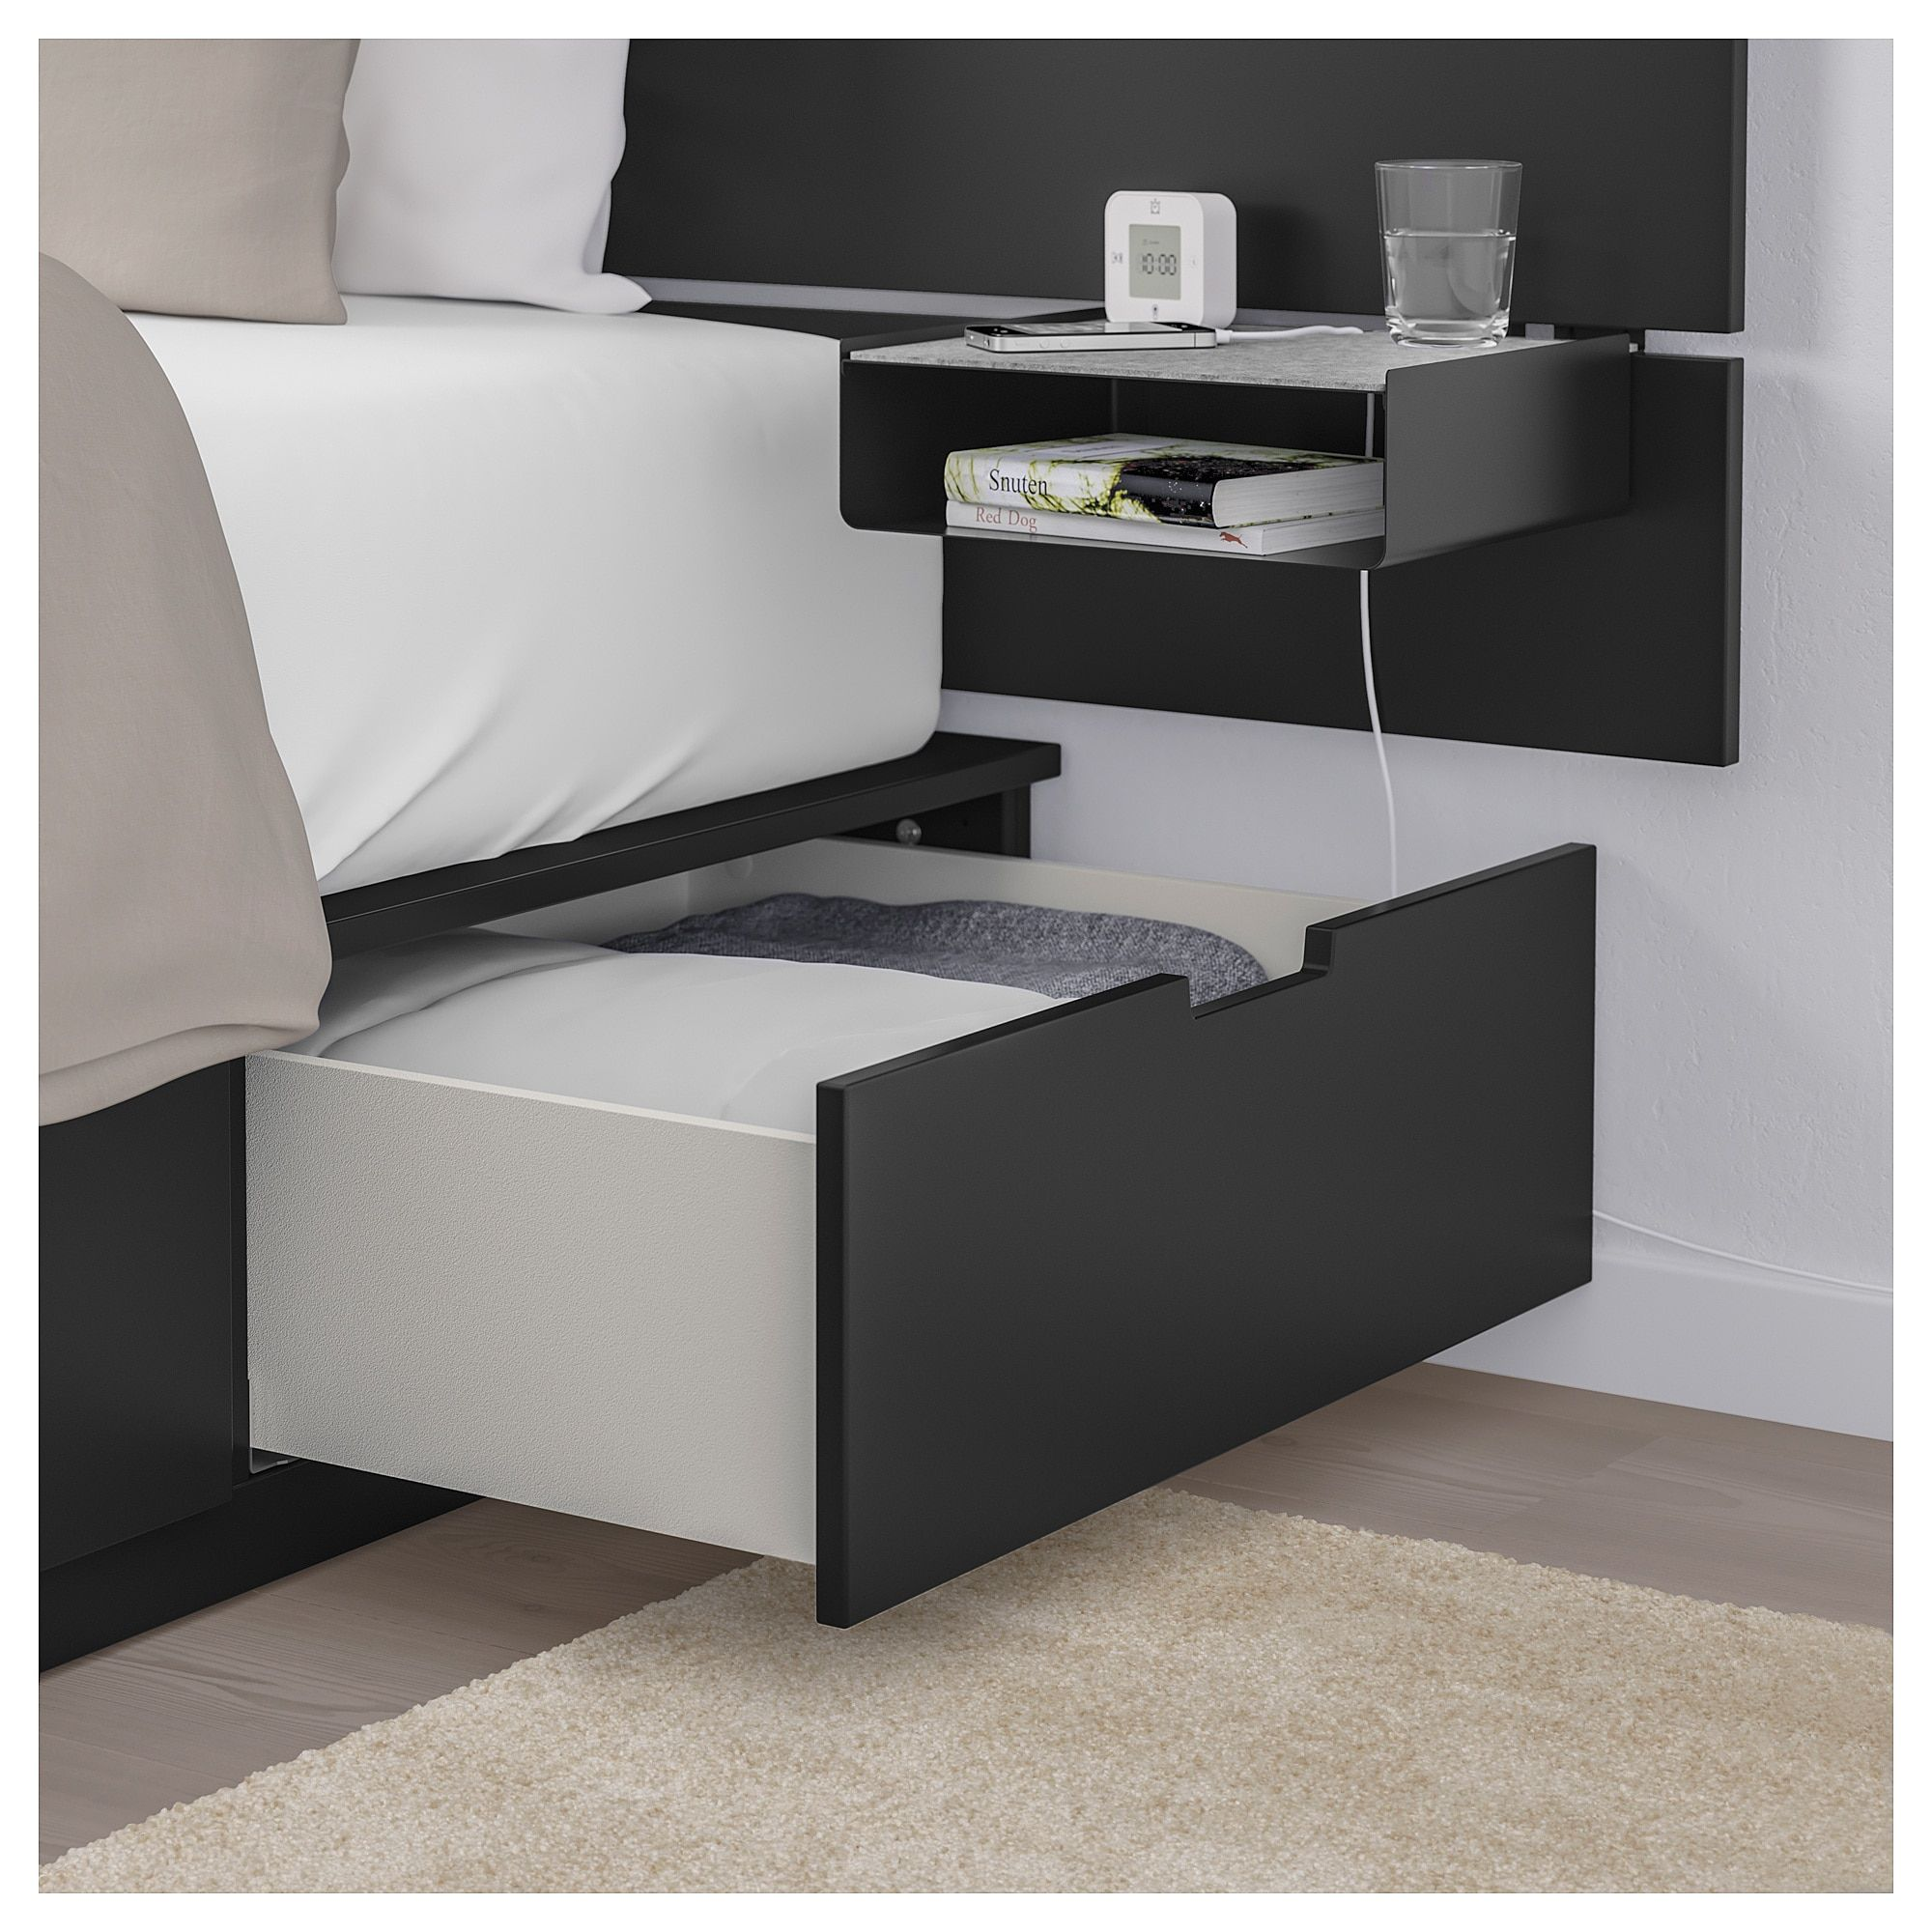 Bed With Headboard And Storage Nordli Anthracite Products